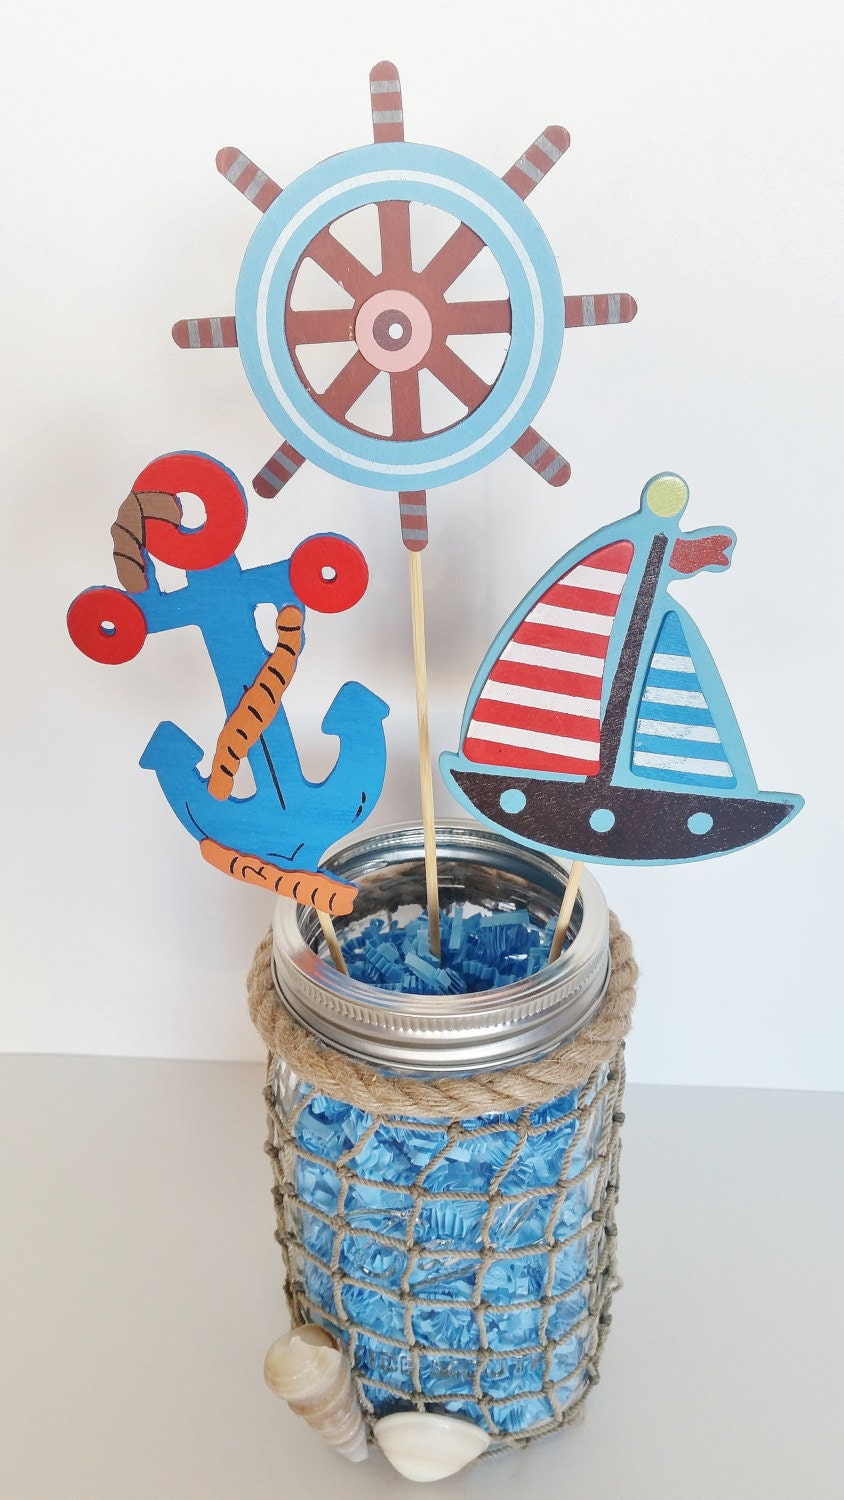 Birthday table decorations boy - Nautical Baby Shower Table Centerpiece Nautical Mason Jar Sailor Party Decor 1st Birthday Centerpiece Beach Theme Party Ahoy Its A Boy